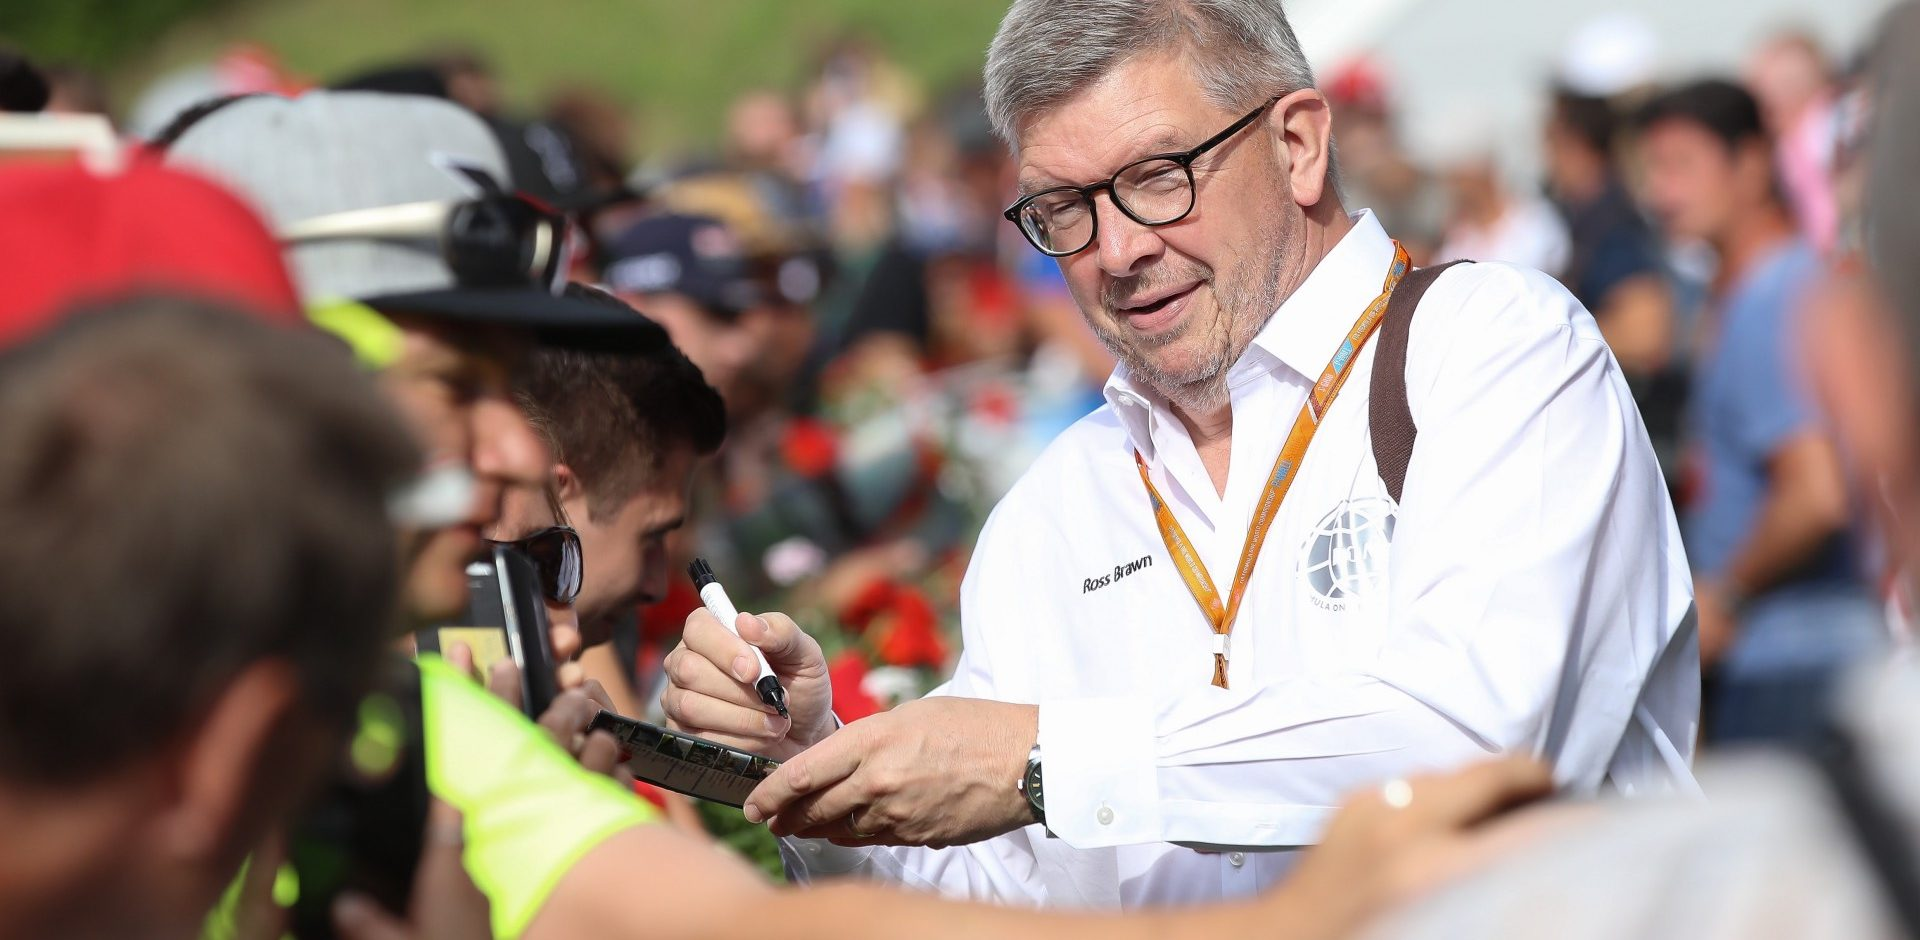 SPIELBERG,AUSTRIA,08.JUL.17 - MOTORSPORTS, FORMULA 1 - Grand Prix of Austria, Red Bull Ring, Styrian Green Carpet. Image shows managing director Ross Brawn (F1/ Motorsports). Photo: GEPA pictures/ Christian Walgram - For editorial use only. Image is free of charge.